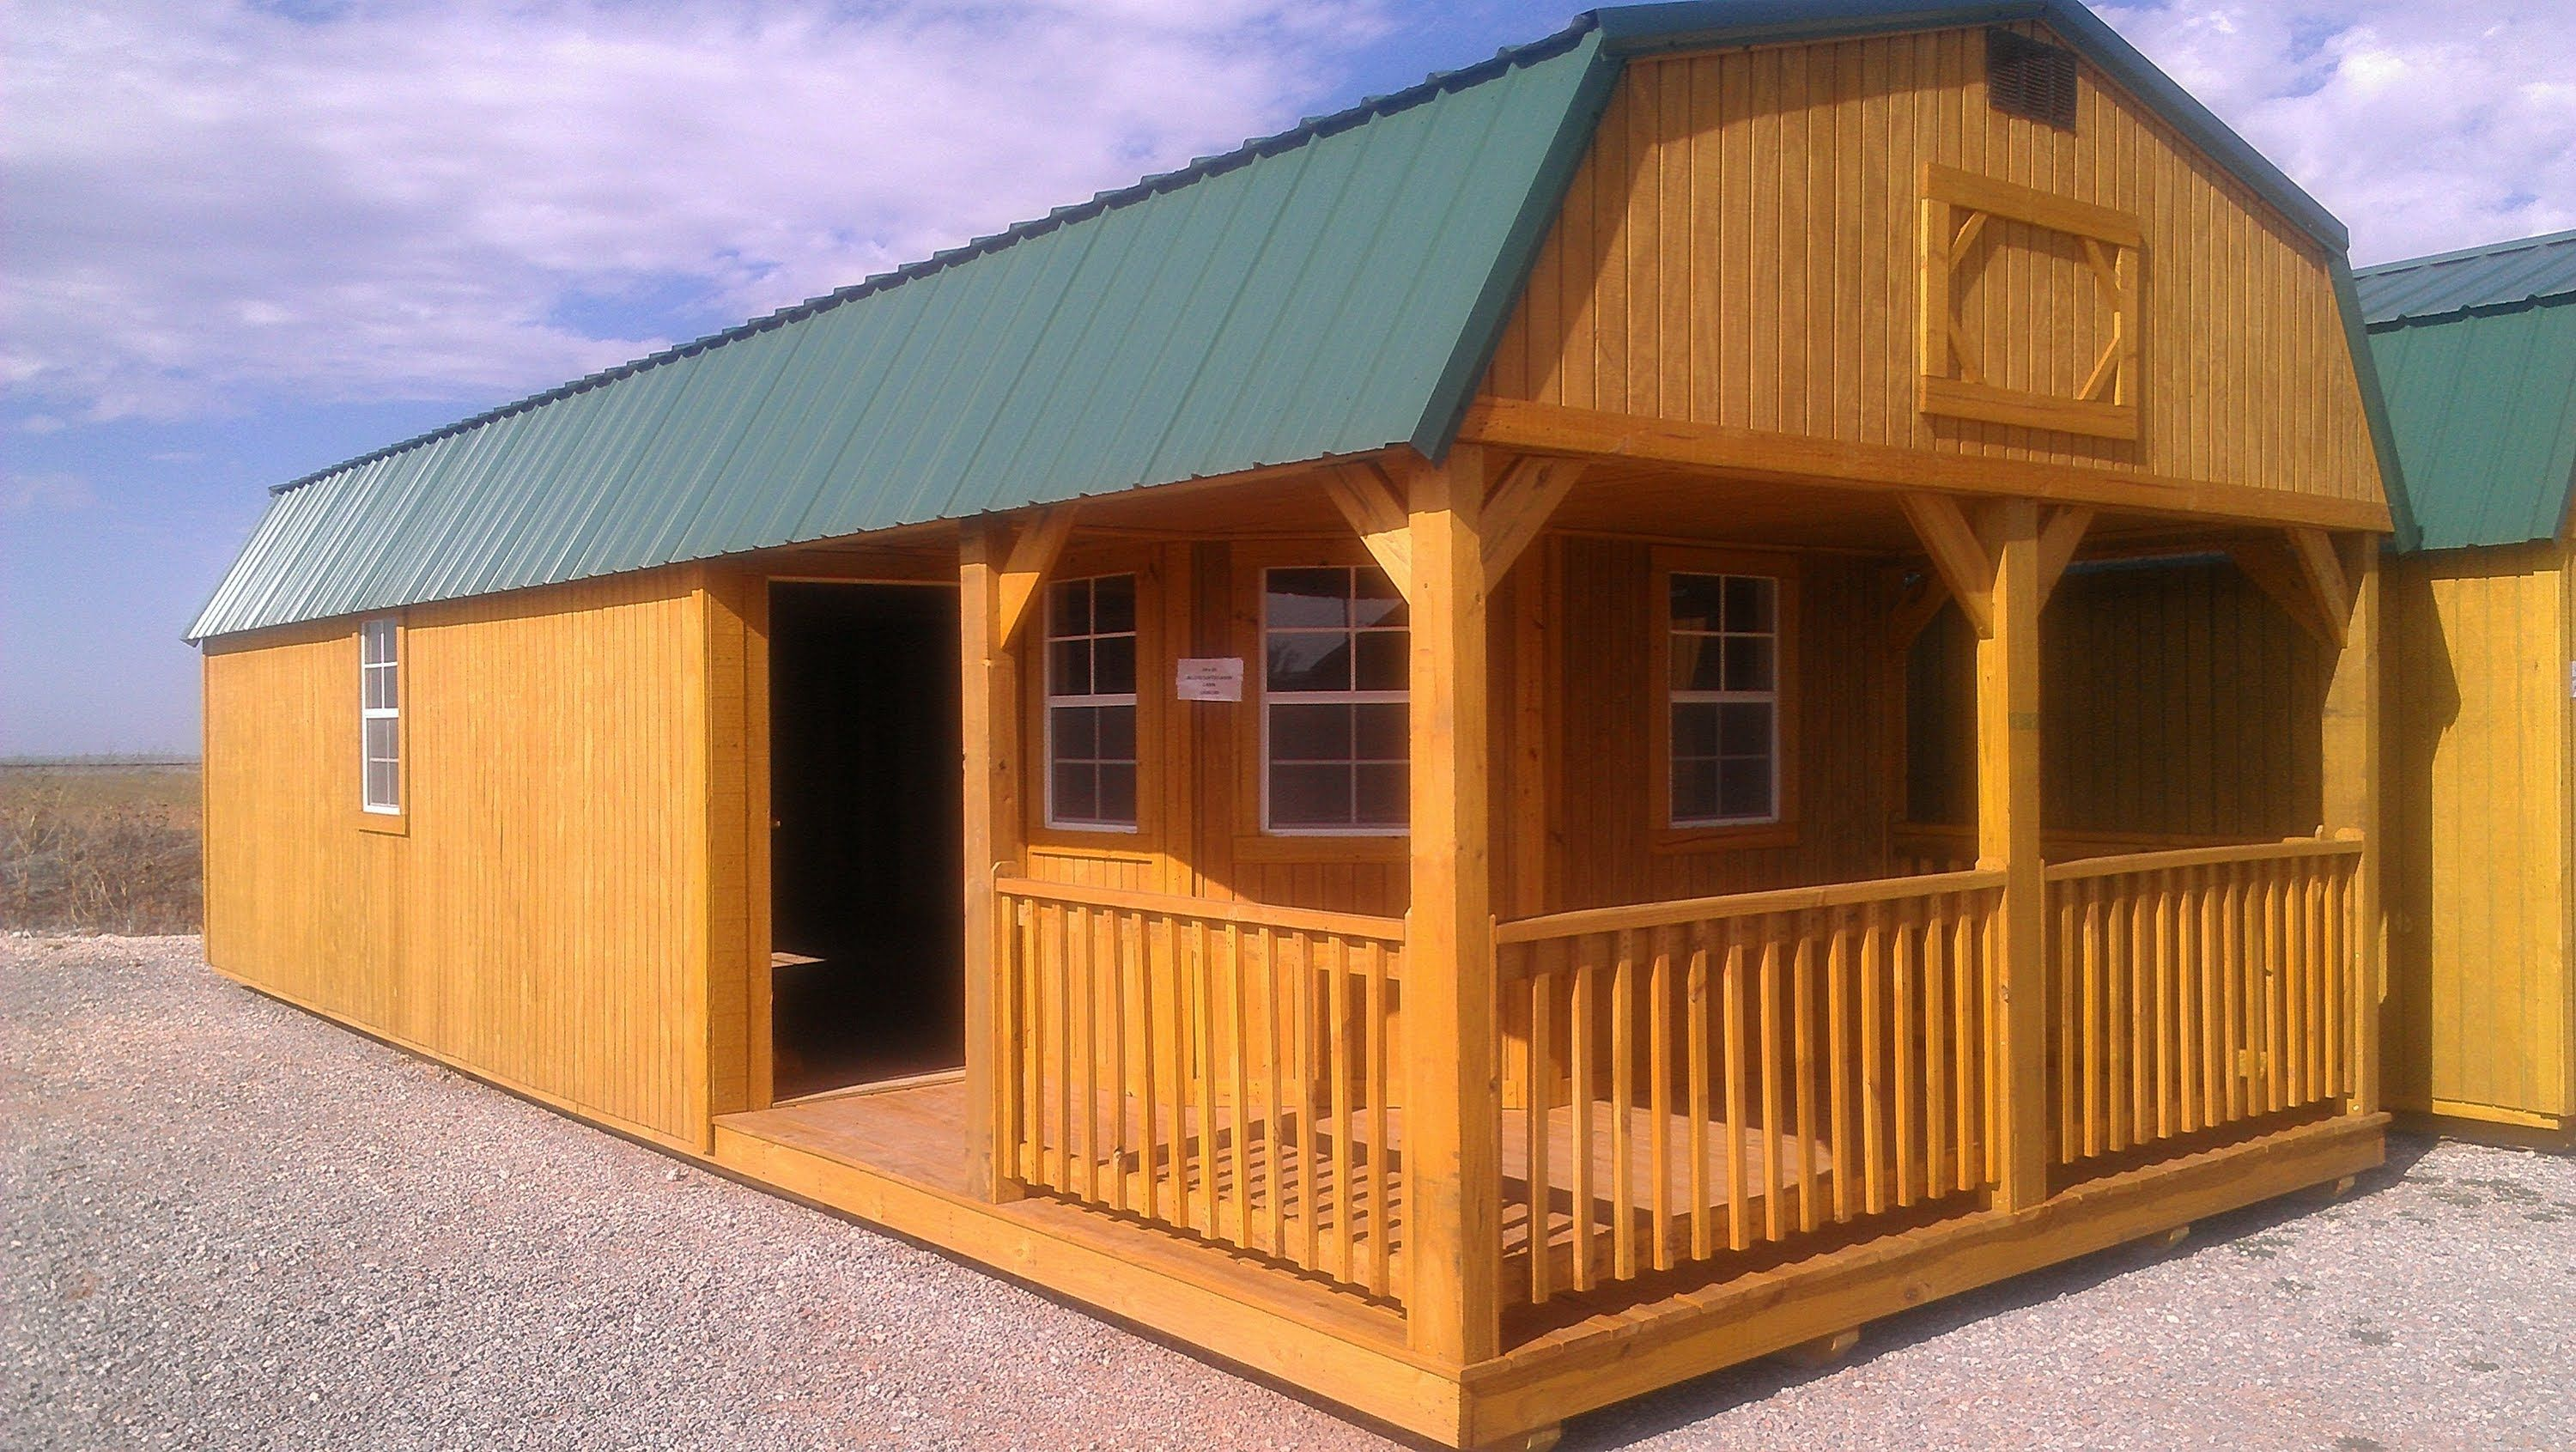 Tiny House Kits Amish Cabin Company Kits Starting At $16350 - TINY ...